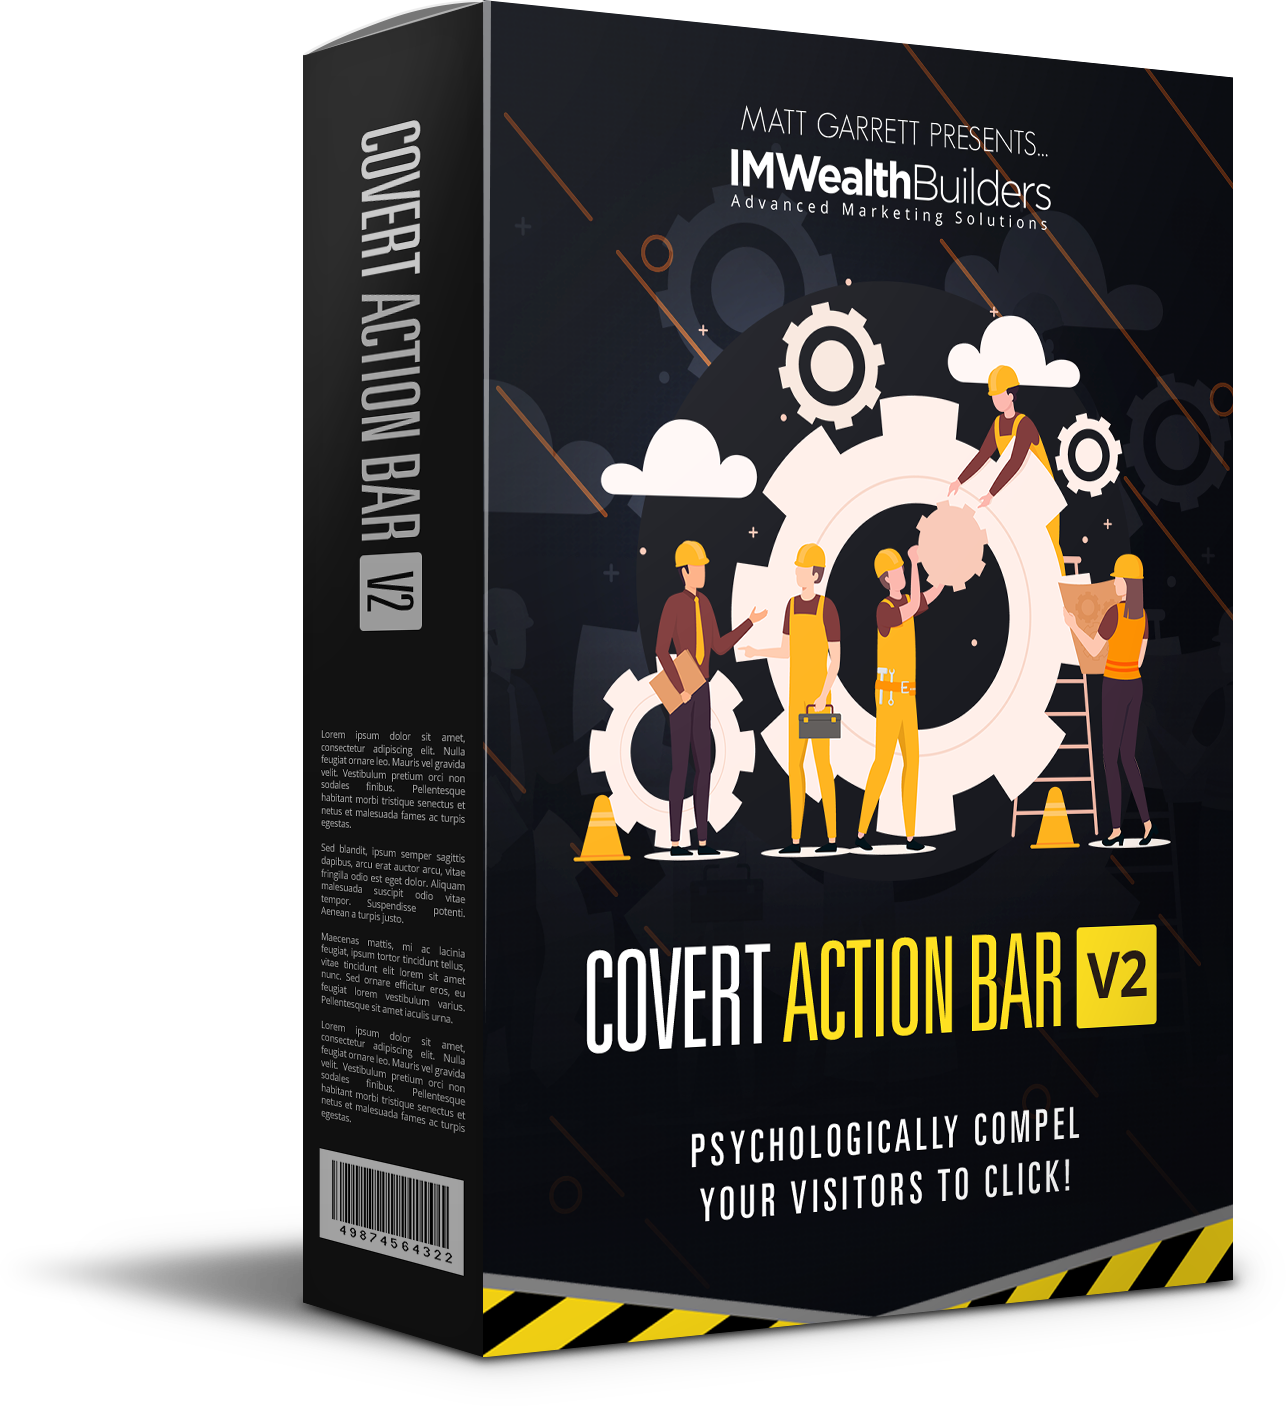 covert action bar